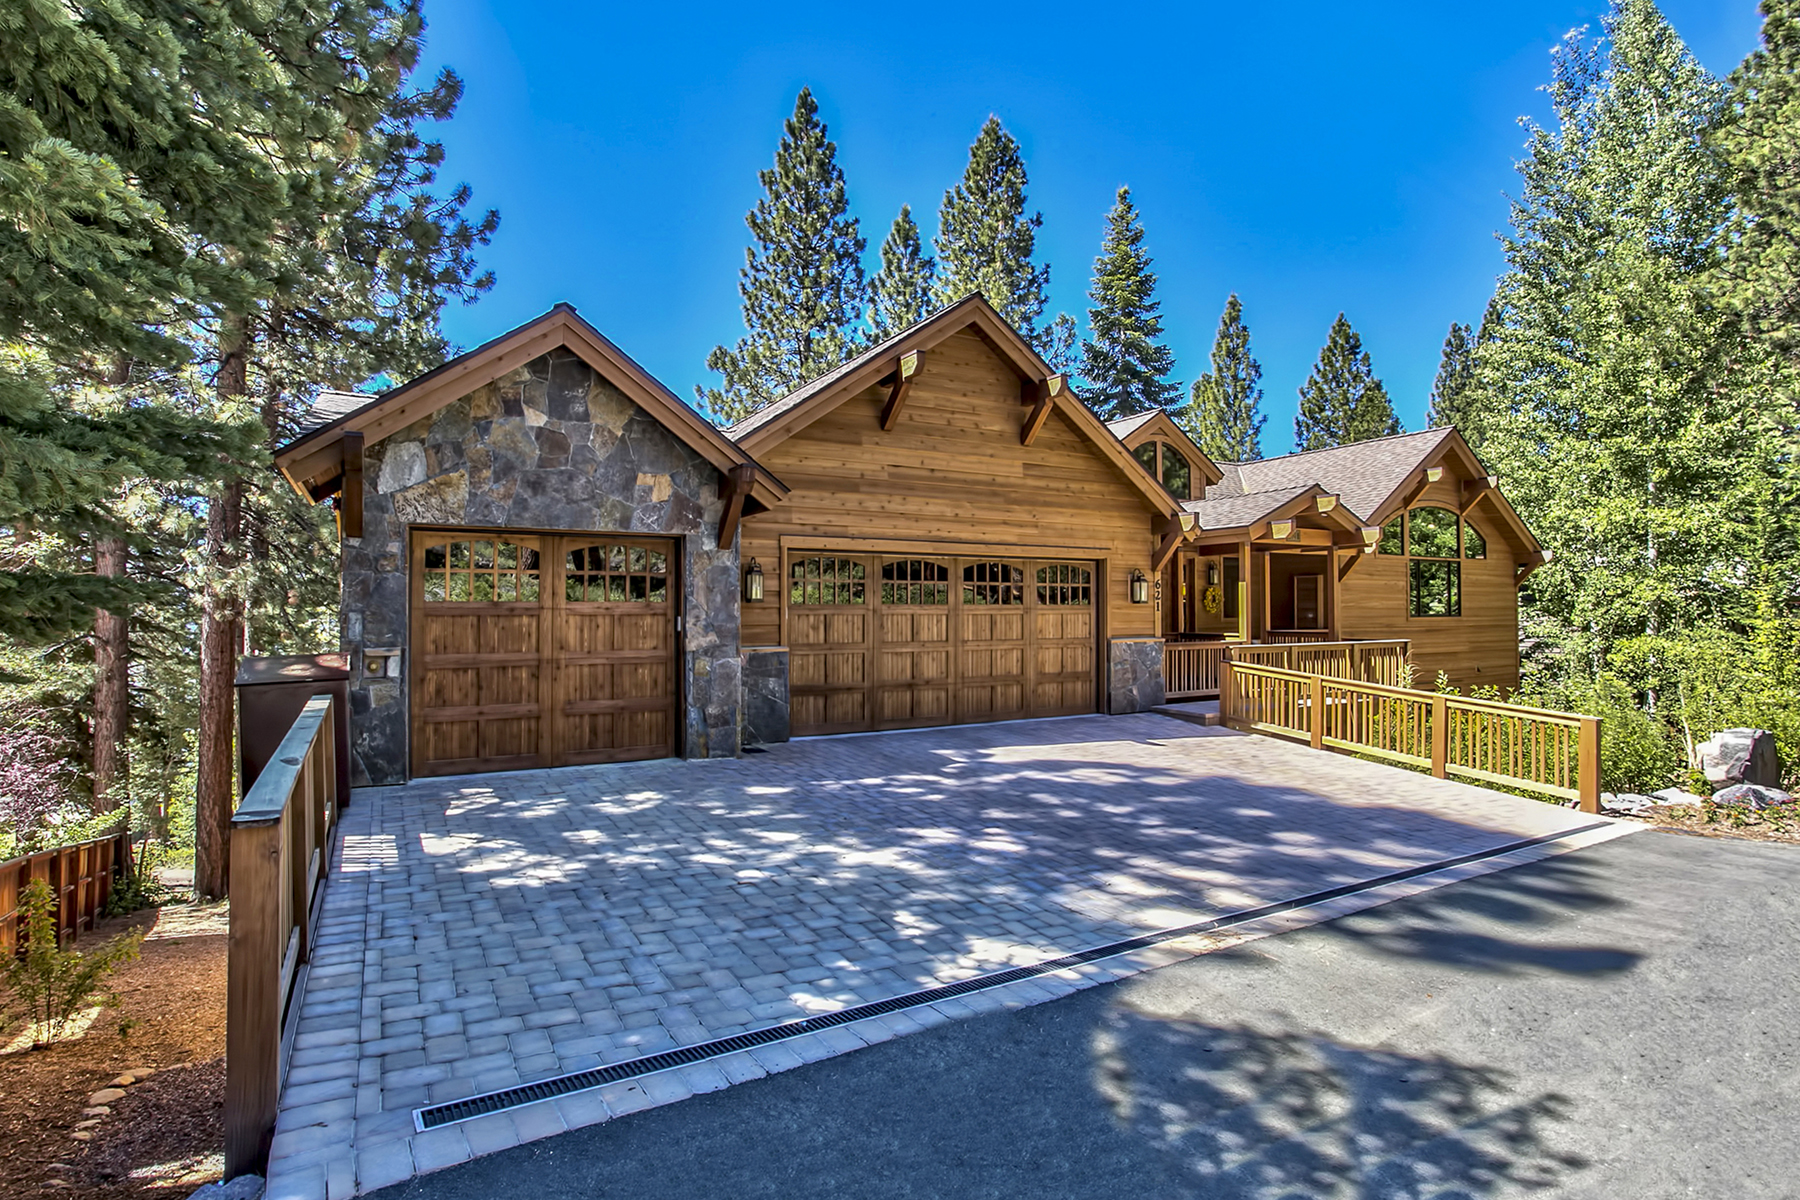 Single Family Home for Sale at 621 Crystal Peak Incline Village, Nevada 89451 United States